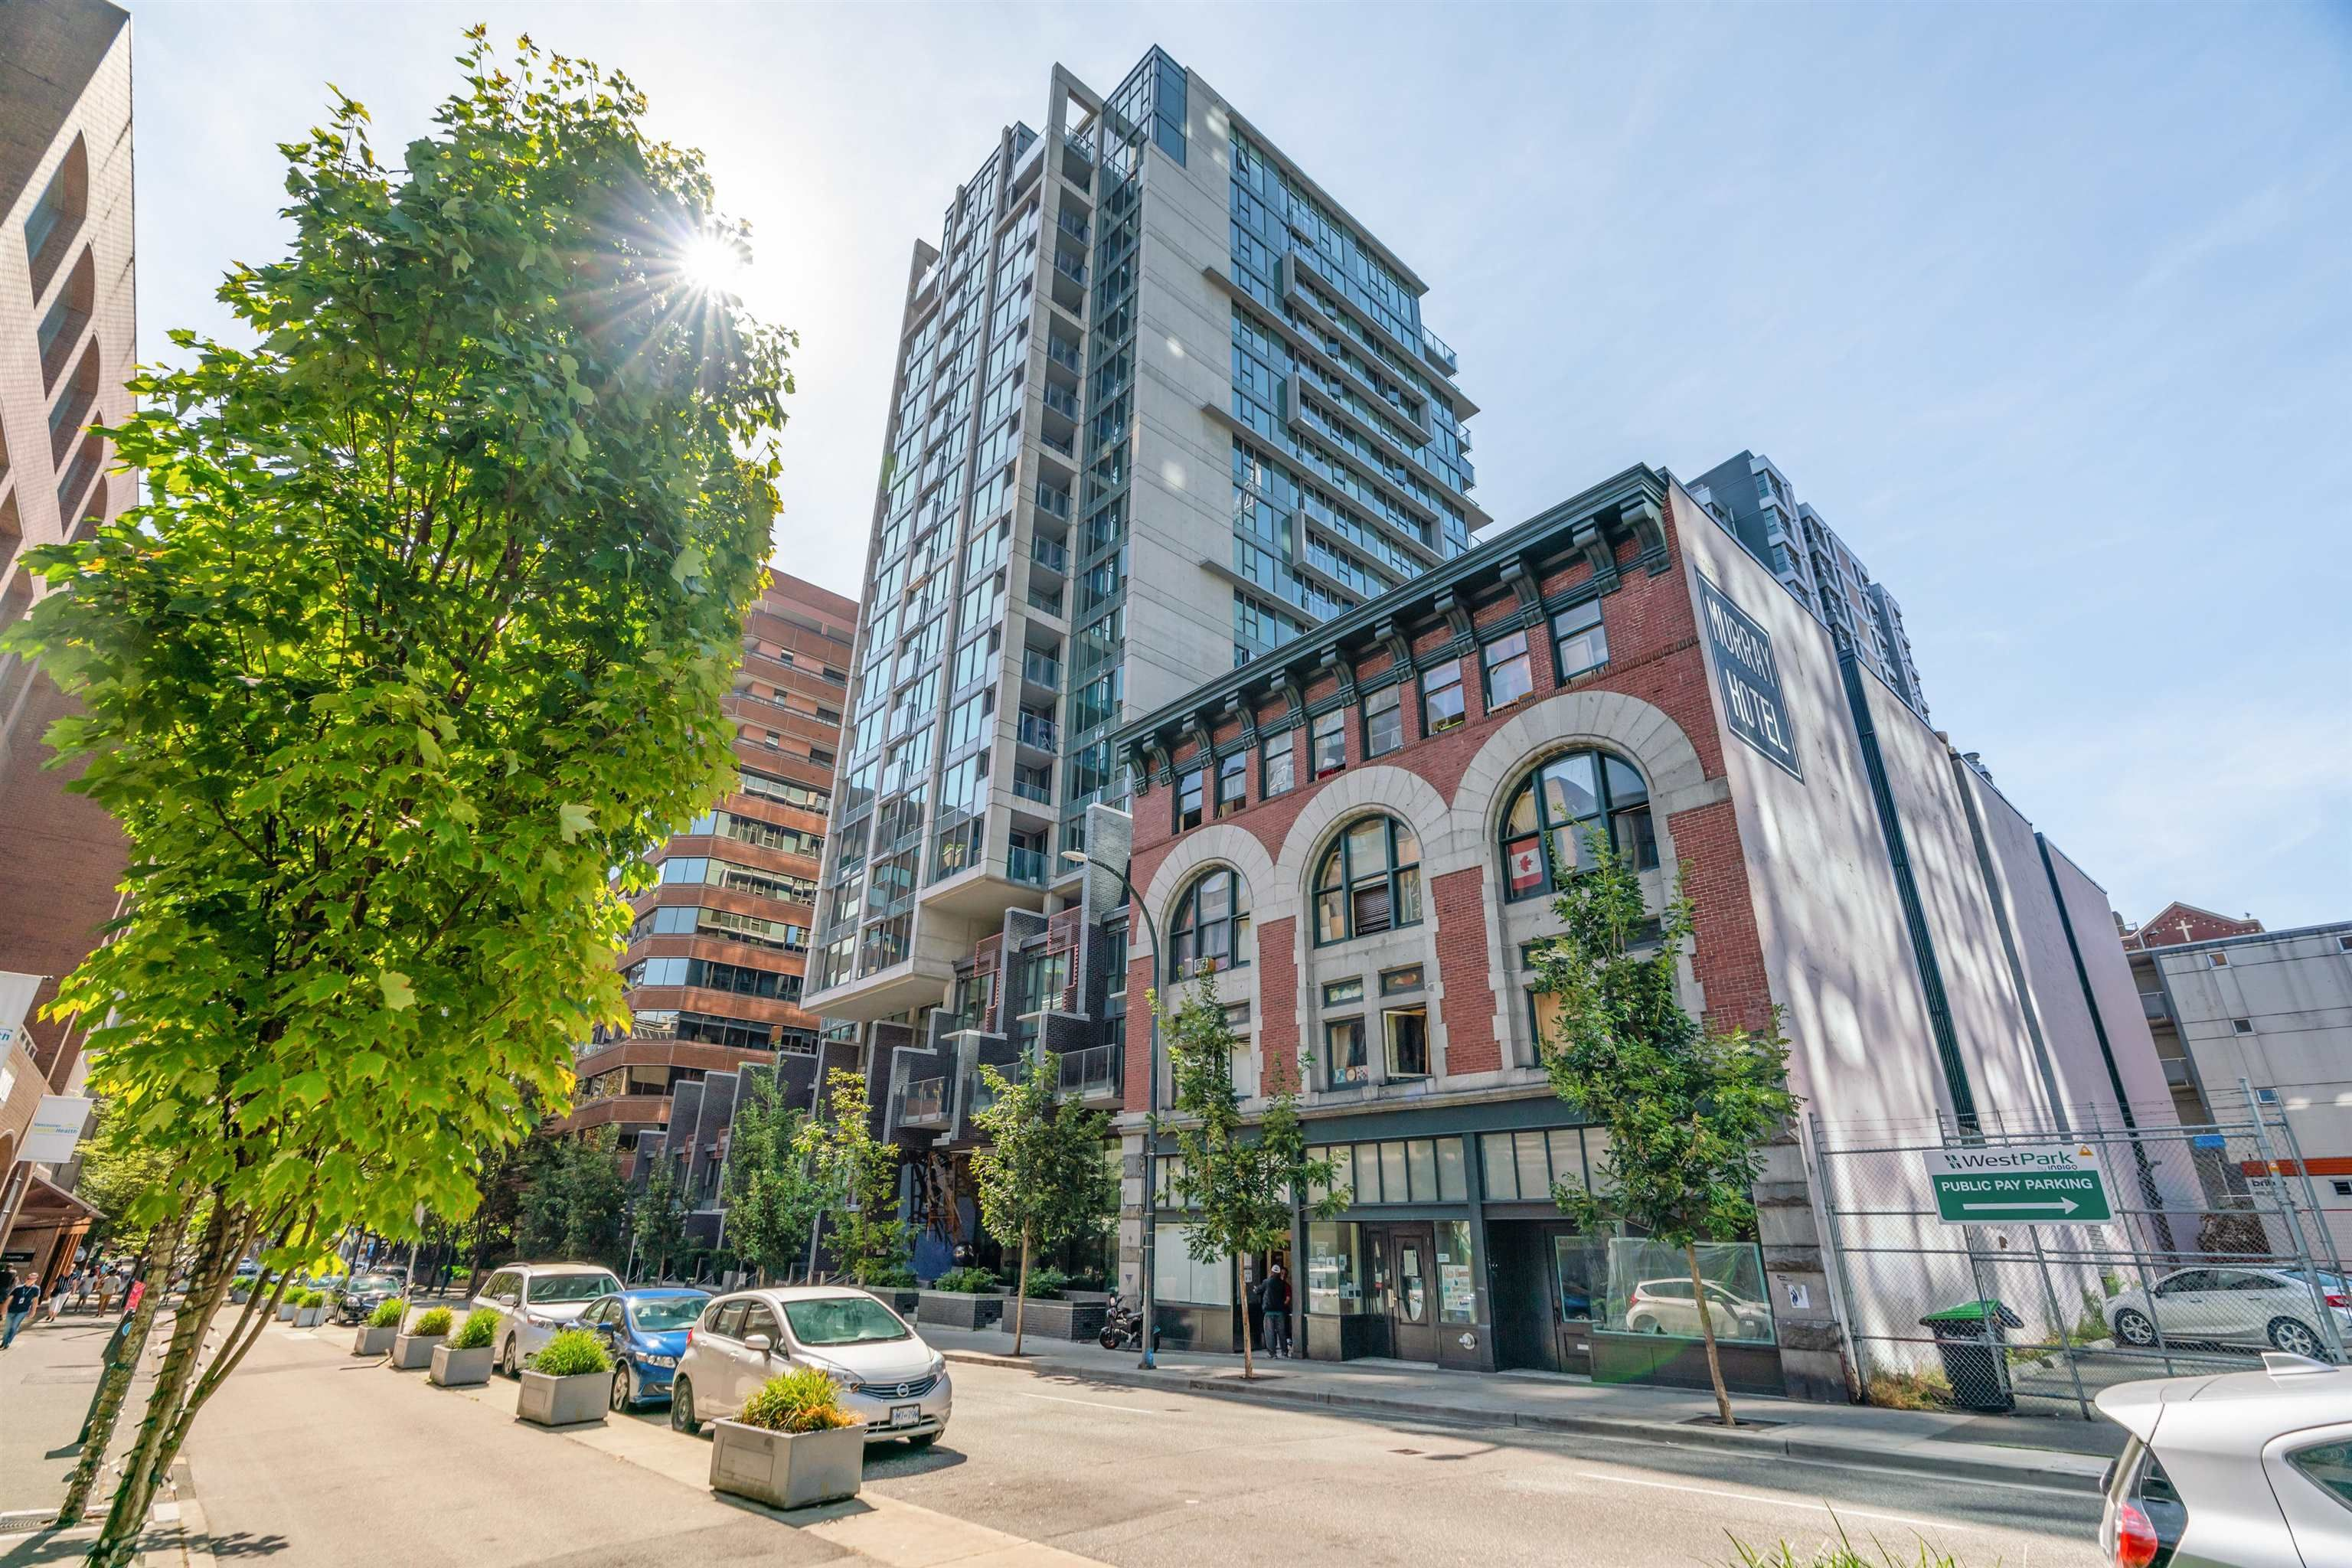 Main Photo: 501 1133 HORNBY STREET in Vancouver: Downtown VW Condo for sale (Vancouver West)  : MLS®# R2609121